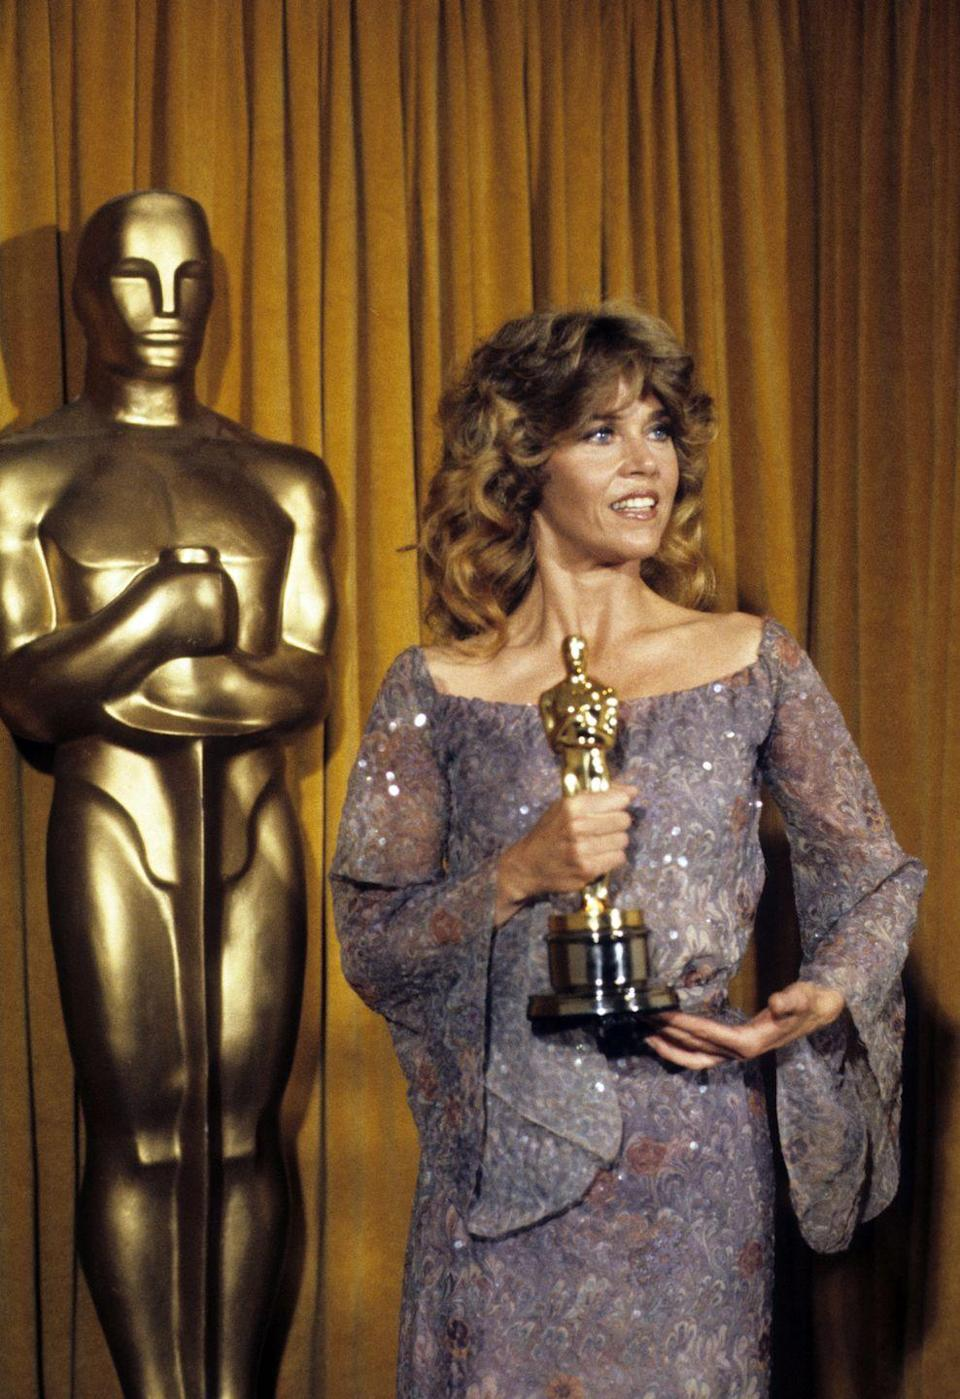 <p>Here, Fonda poses backstage with her Oscar at the 51st annual Academy Awards. She had won Best Actress in a Leading Role for her portrayal of Sally Hyde in Hal Ashby's <em>Coming Home</em>.<br></p>